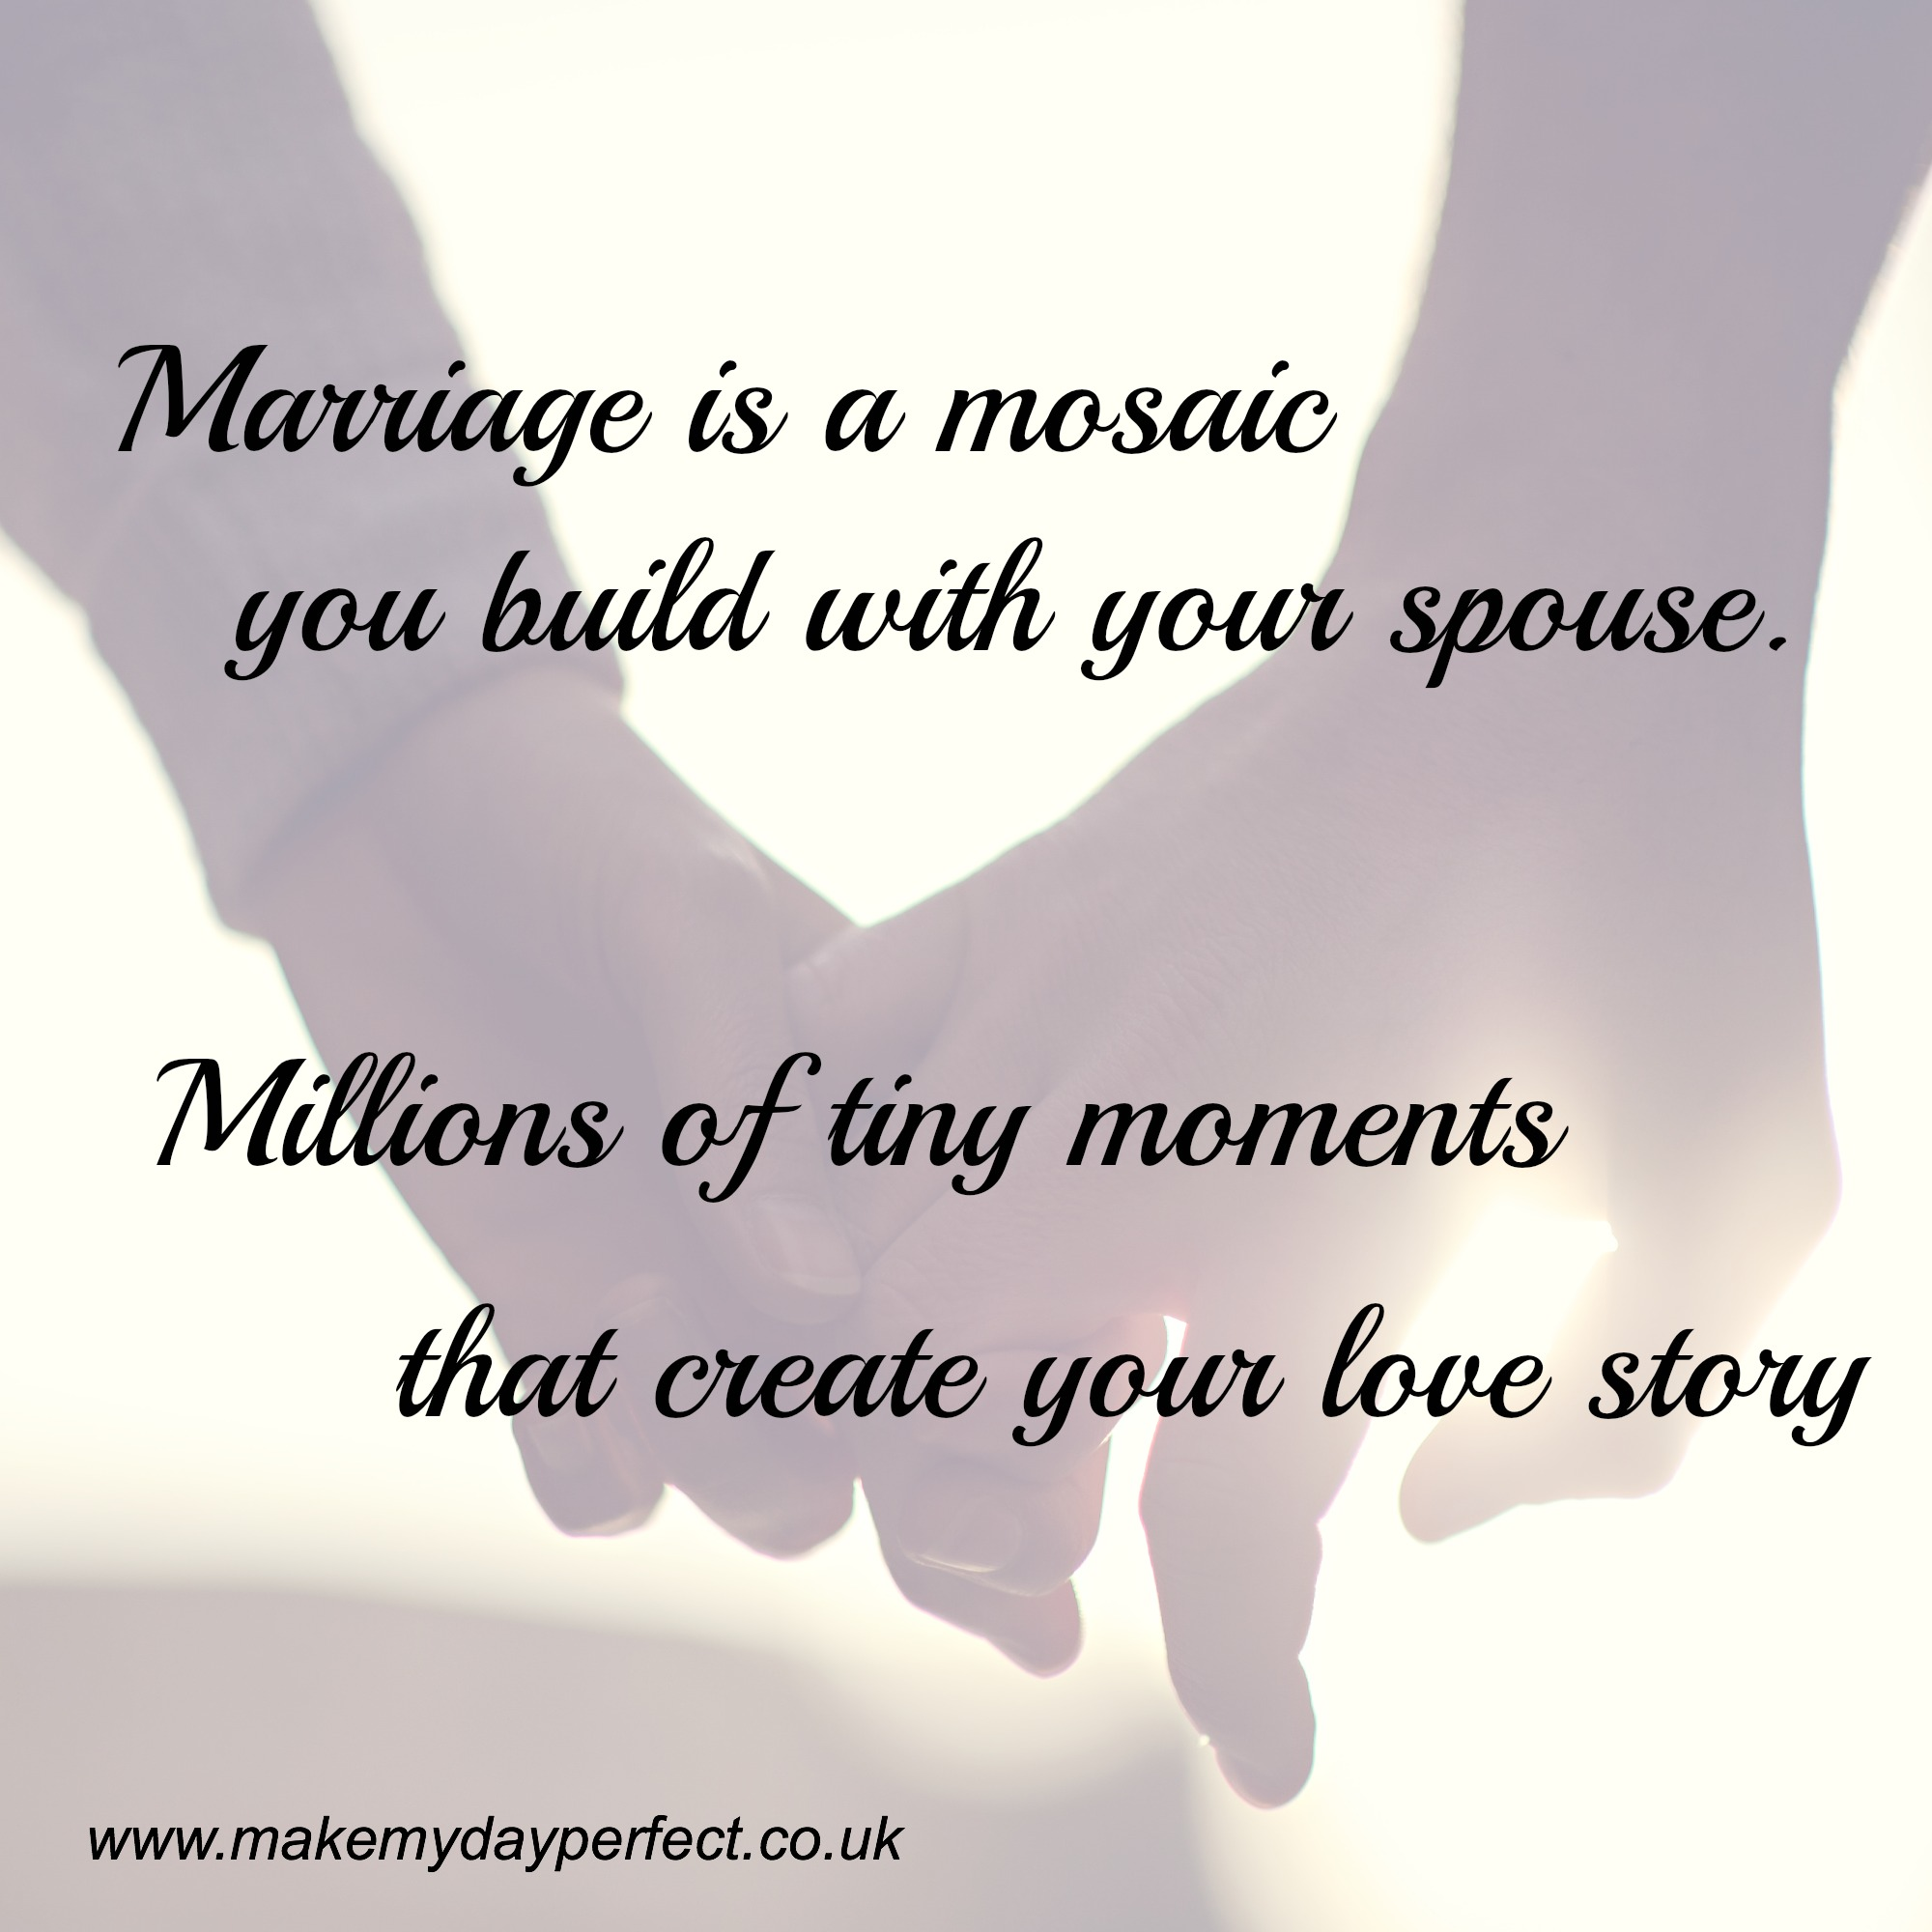 Quotes On Love And Marriage Love Quotes  Make My Day Perfect